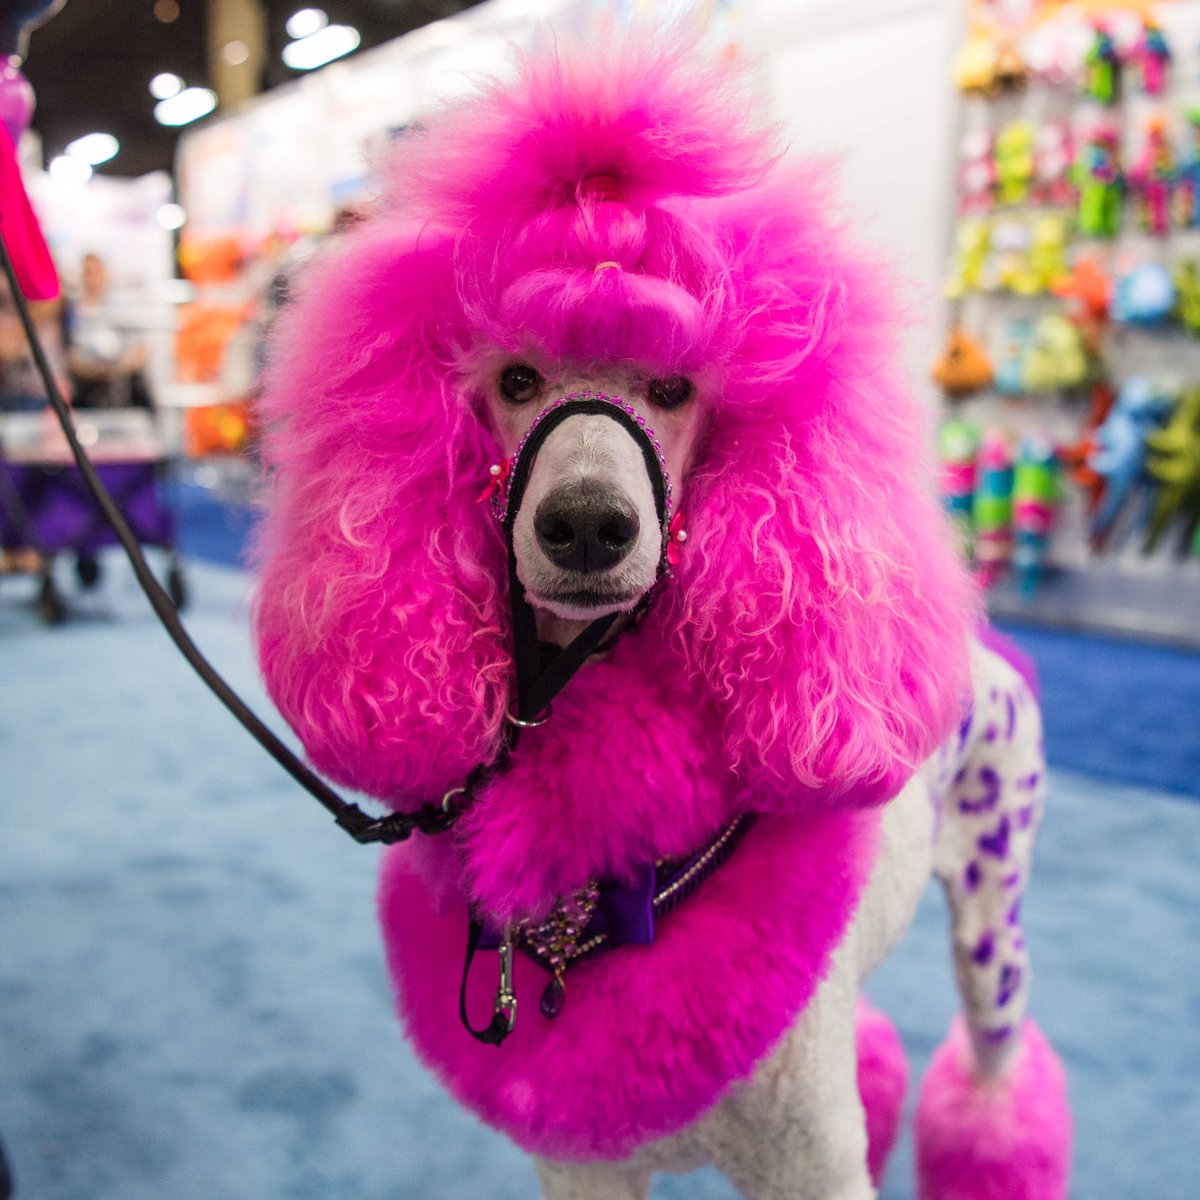 Blue Dyed Standard Poodle The Dogist on T...